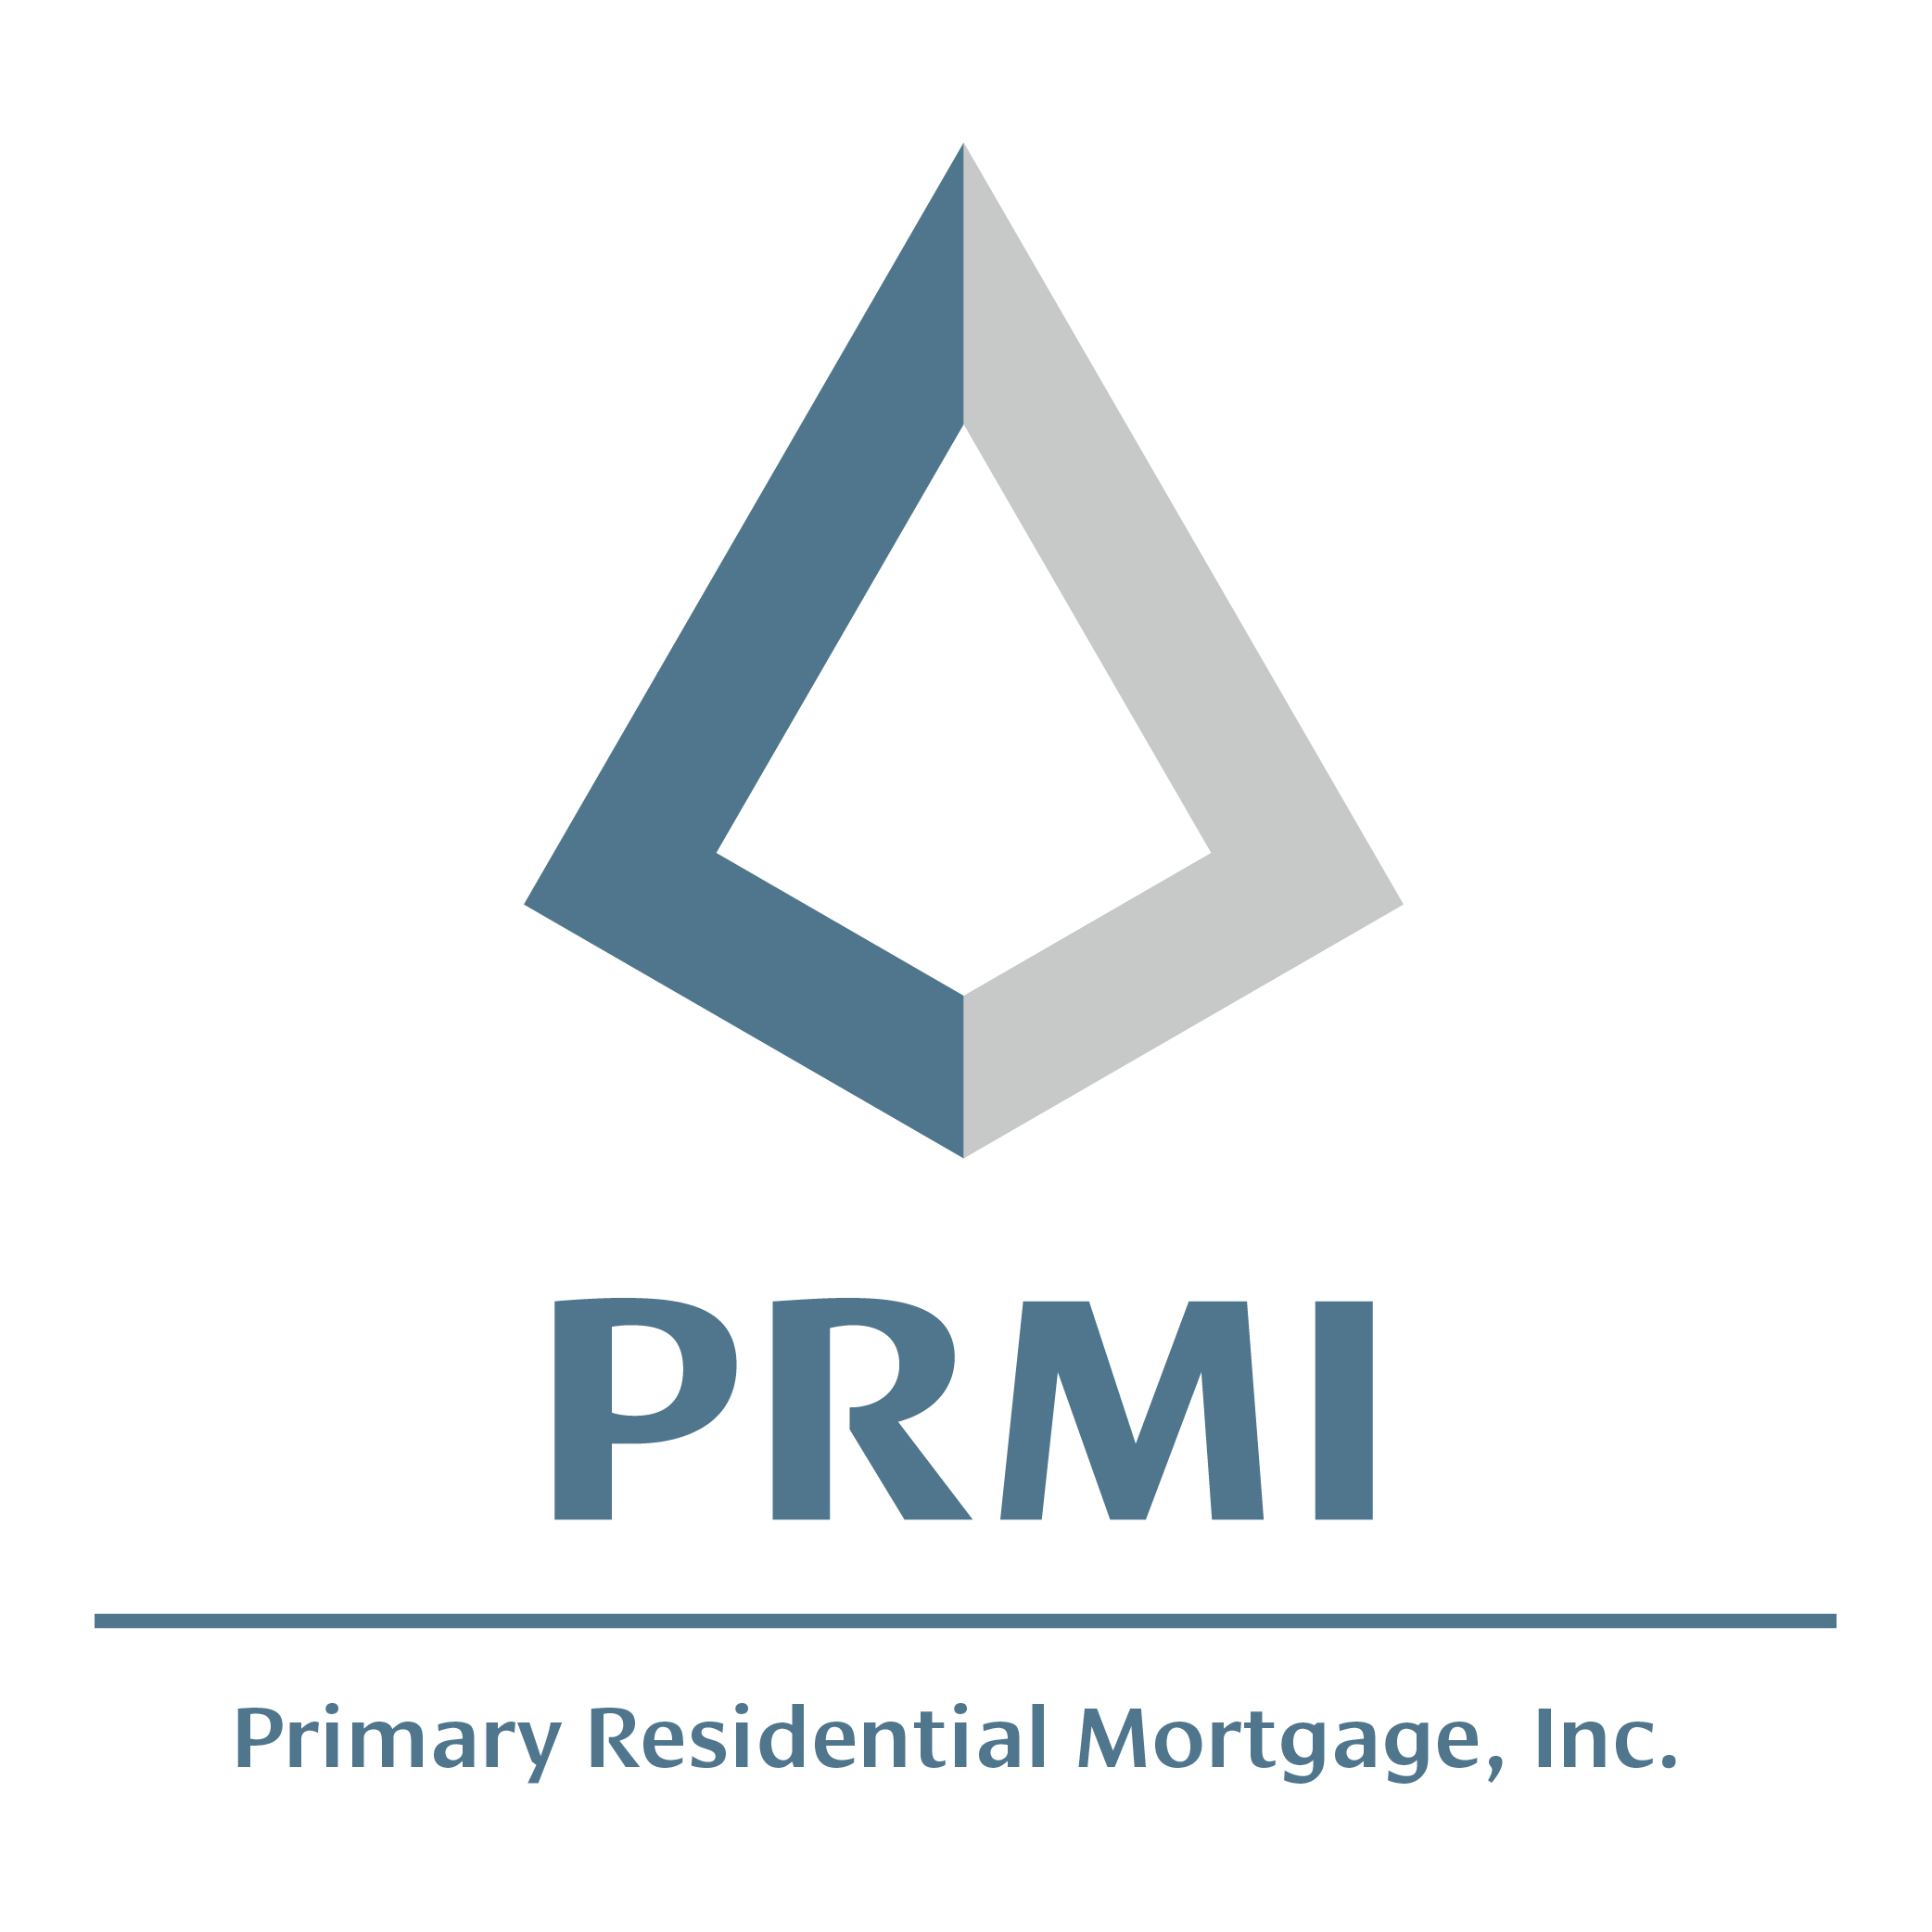 Primary Residential Mortgage, Inc. - Moab, UT 84532 - (435)259-0259 | ShowMeLocal.com